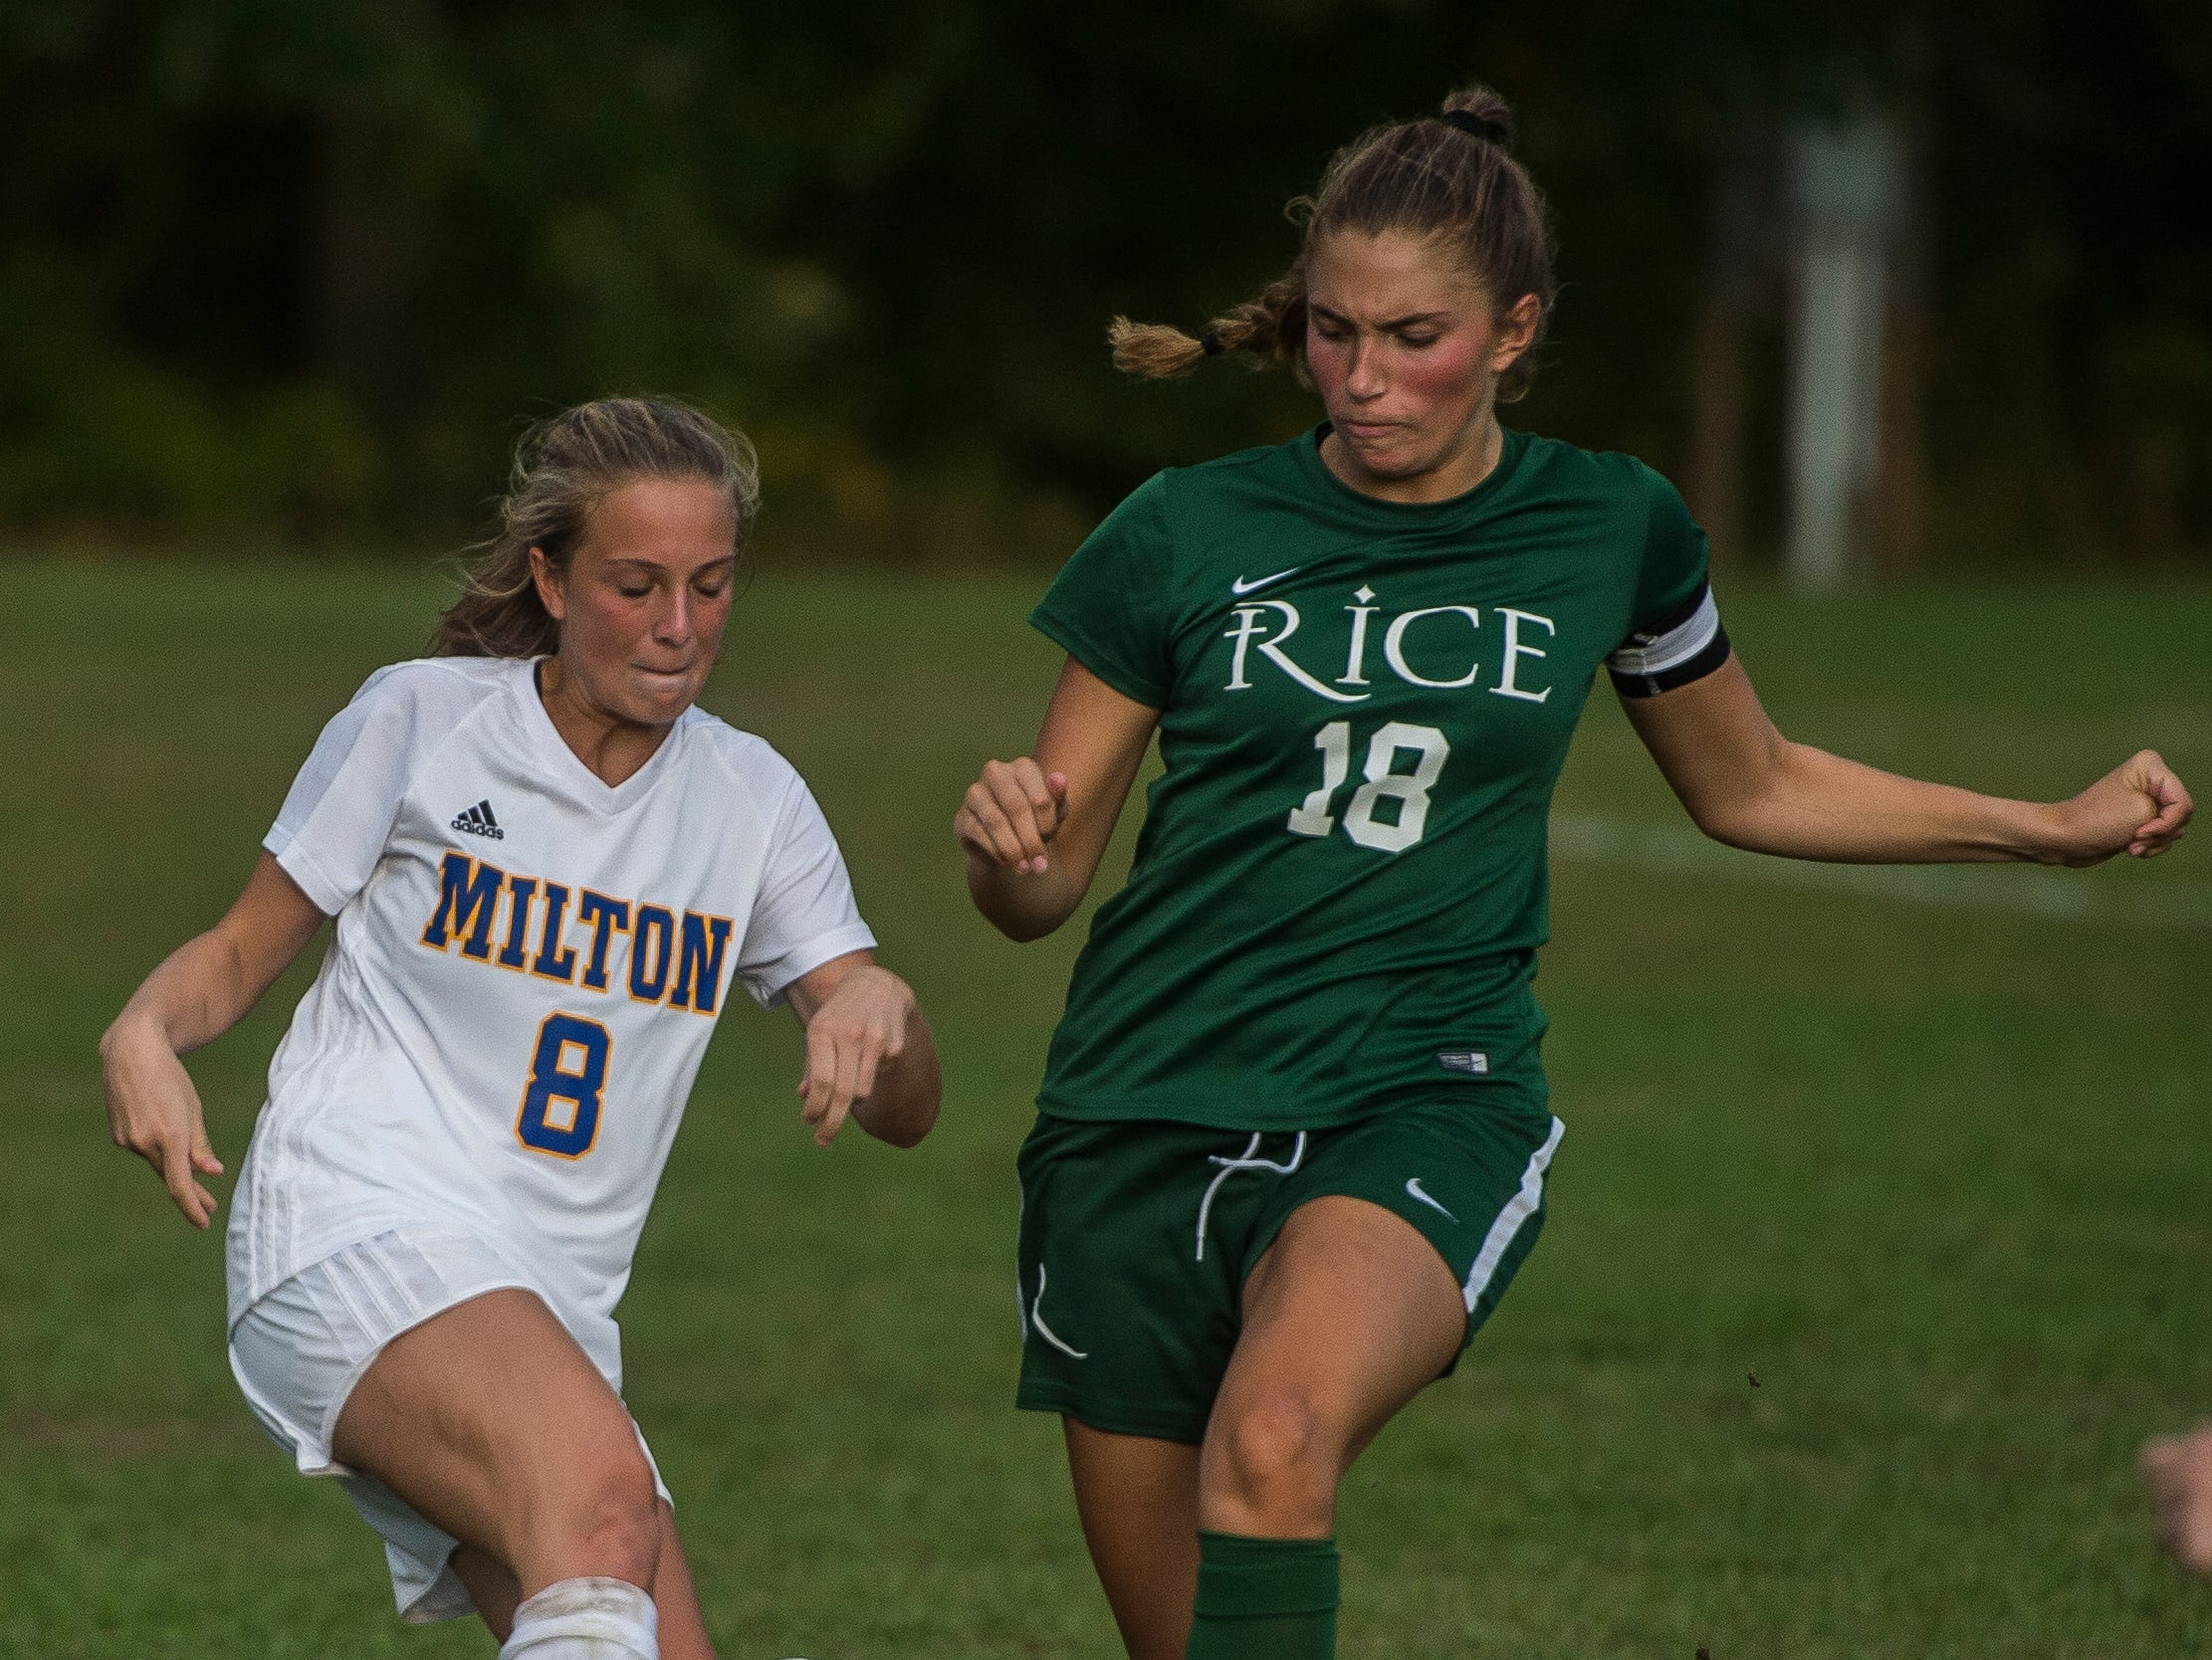 Milton #8 Molly Loucy forward the ball just ahead of Rice #18 Abby McKeown during their girl's high school soccer game in South Burlington on Wednesday, Oct. 10, 2018. Milton won, 2-1.